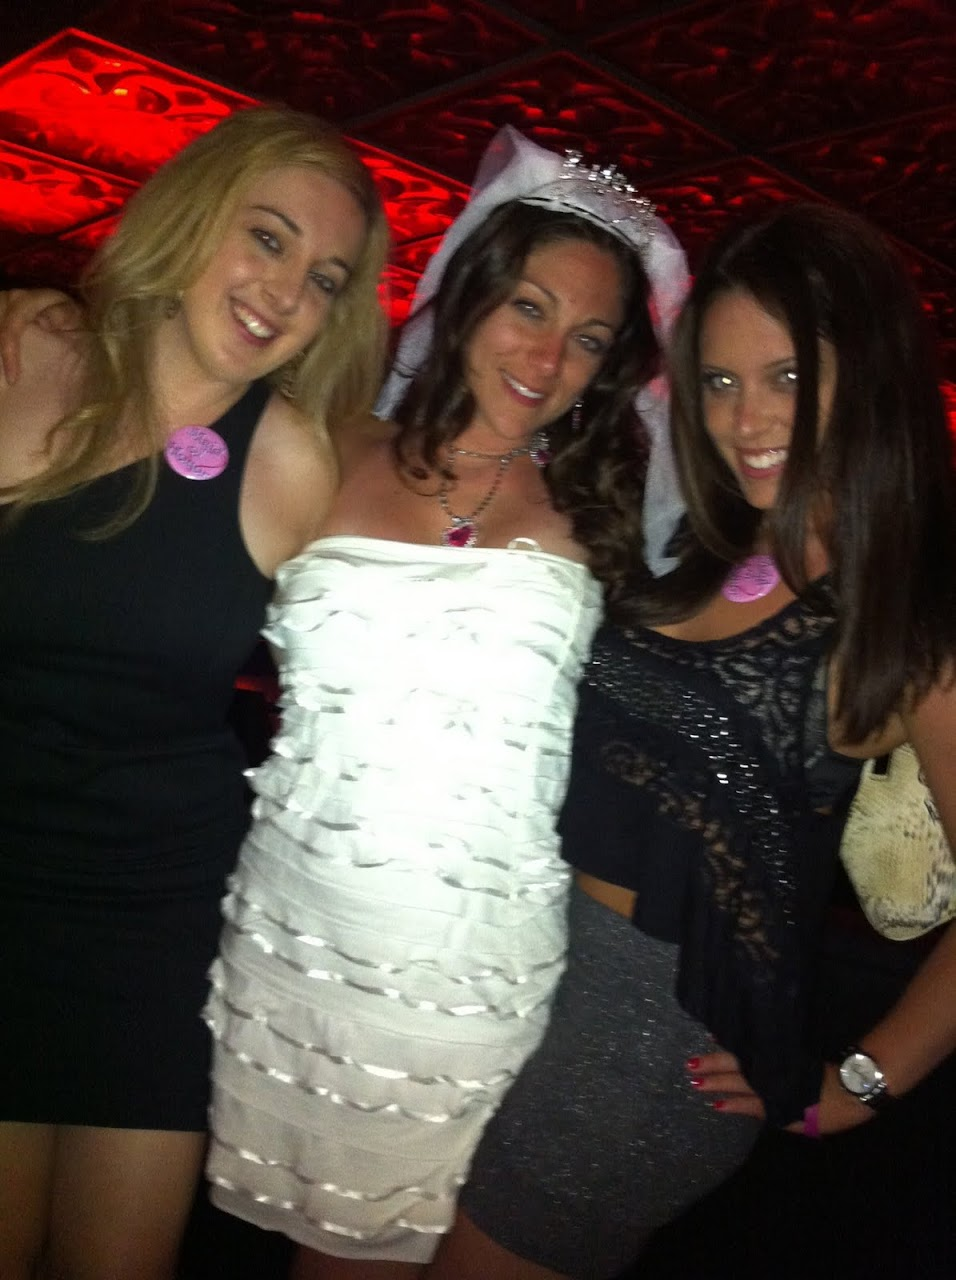 Bachelorette Parties - Idea #11: Atlantic City